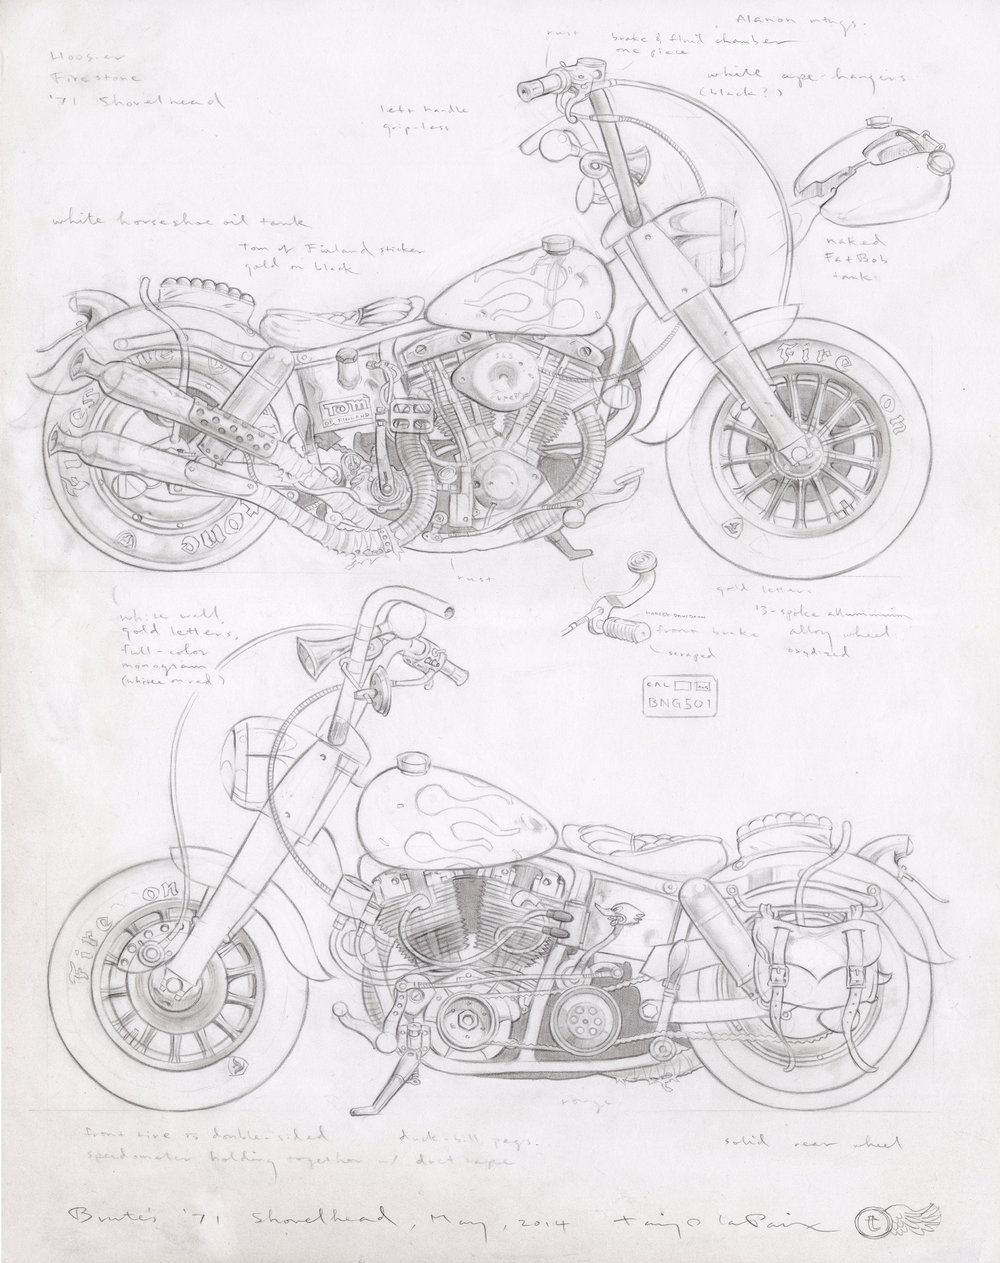 Brute's '71 Shovelhead, 2014, pencil on paper, 14 x 11 inches